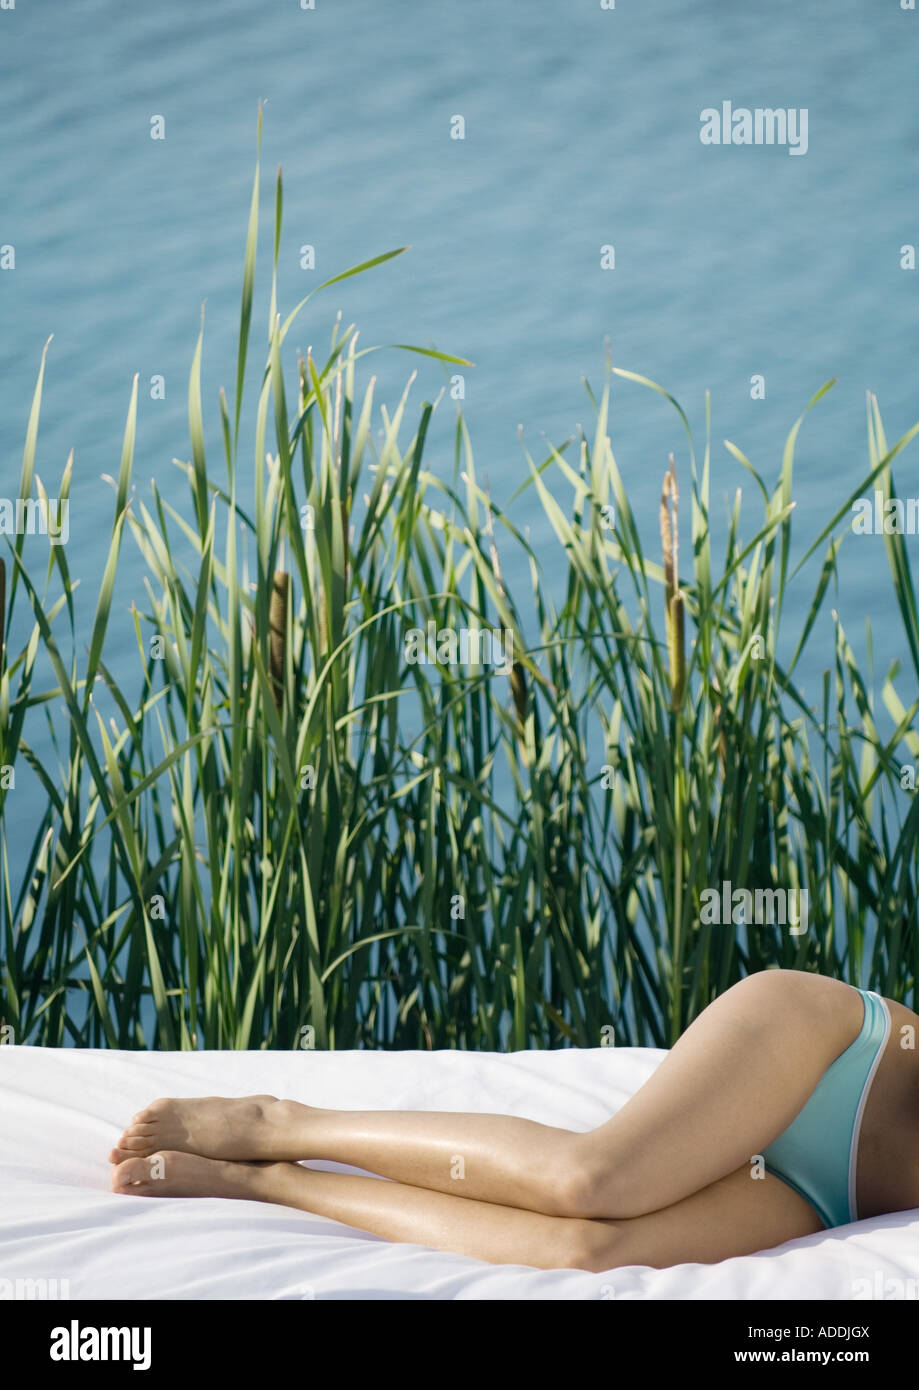 Woman lying on side, waist down, water and reeds in background - Stock Image